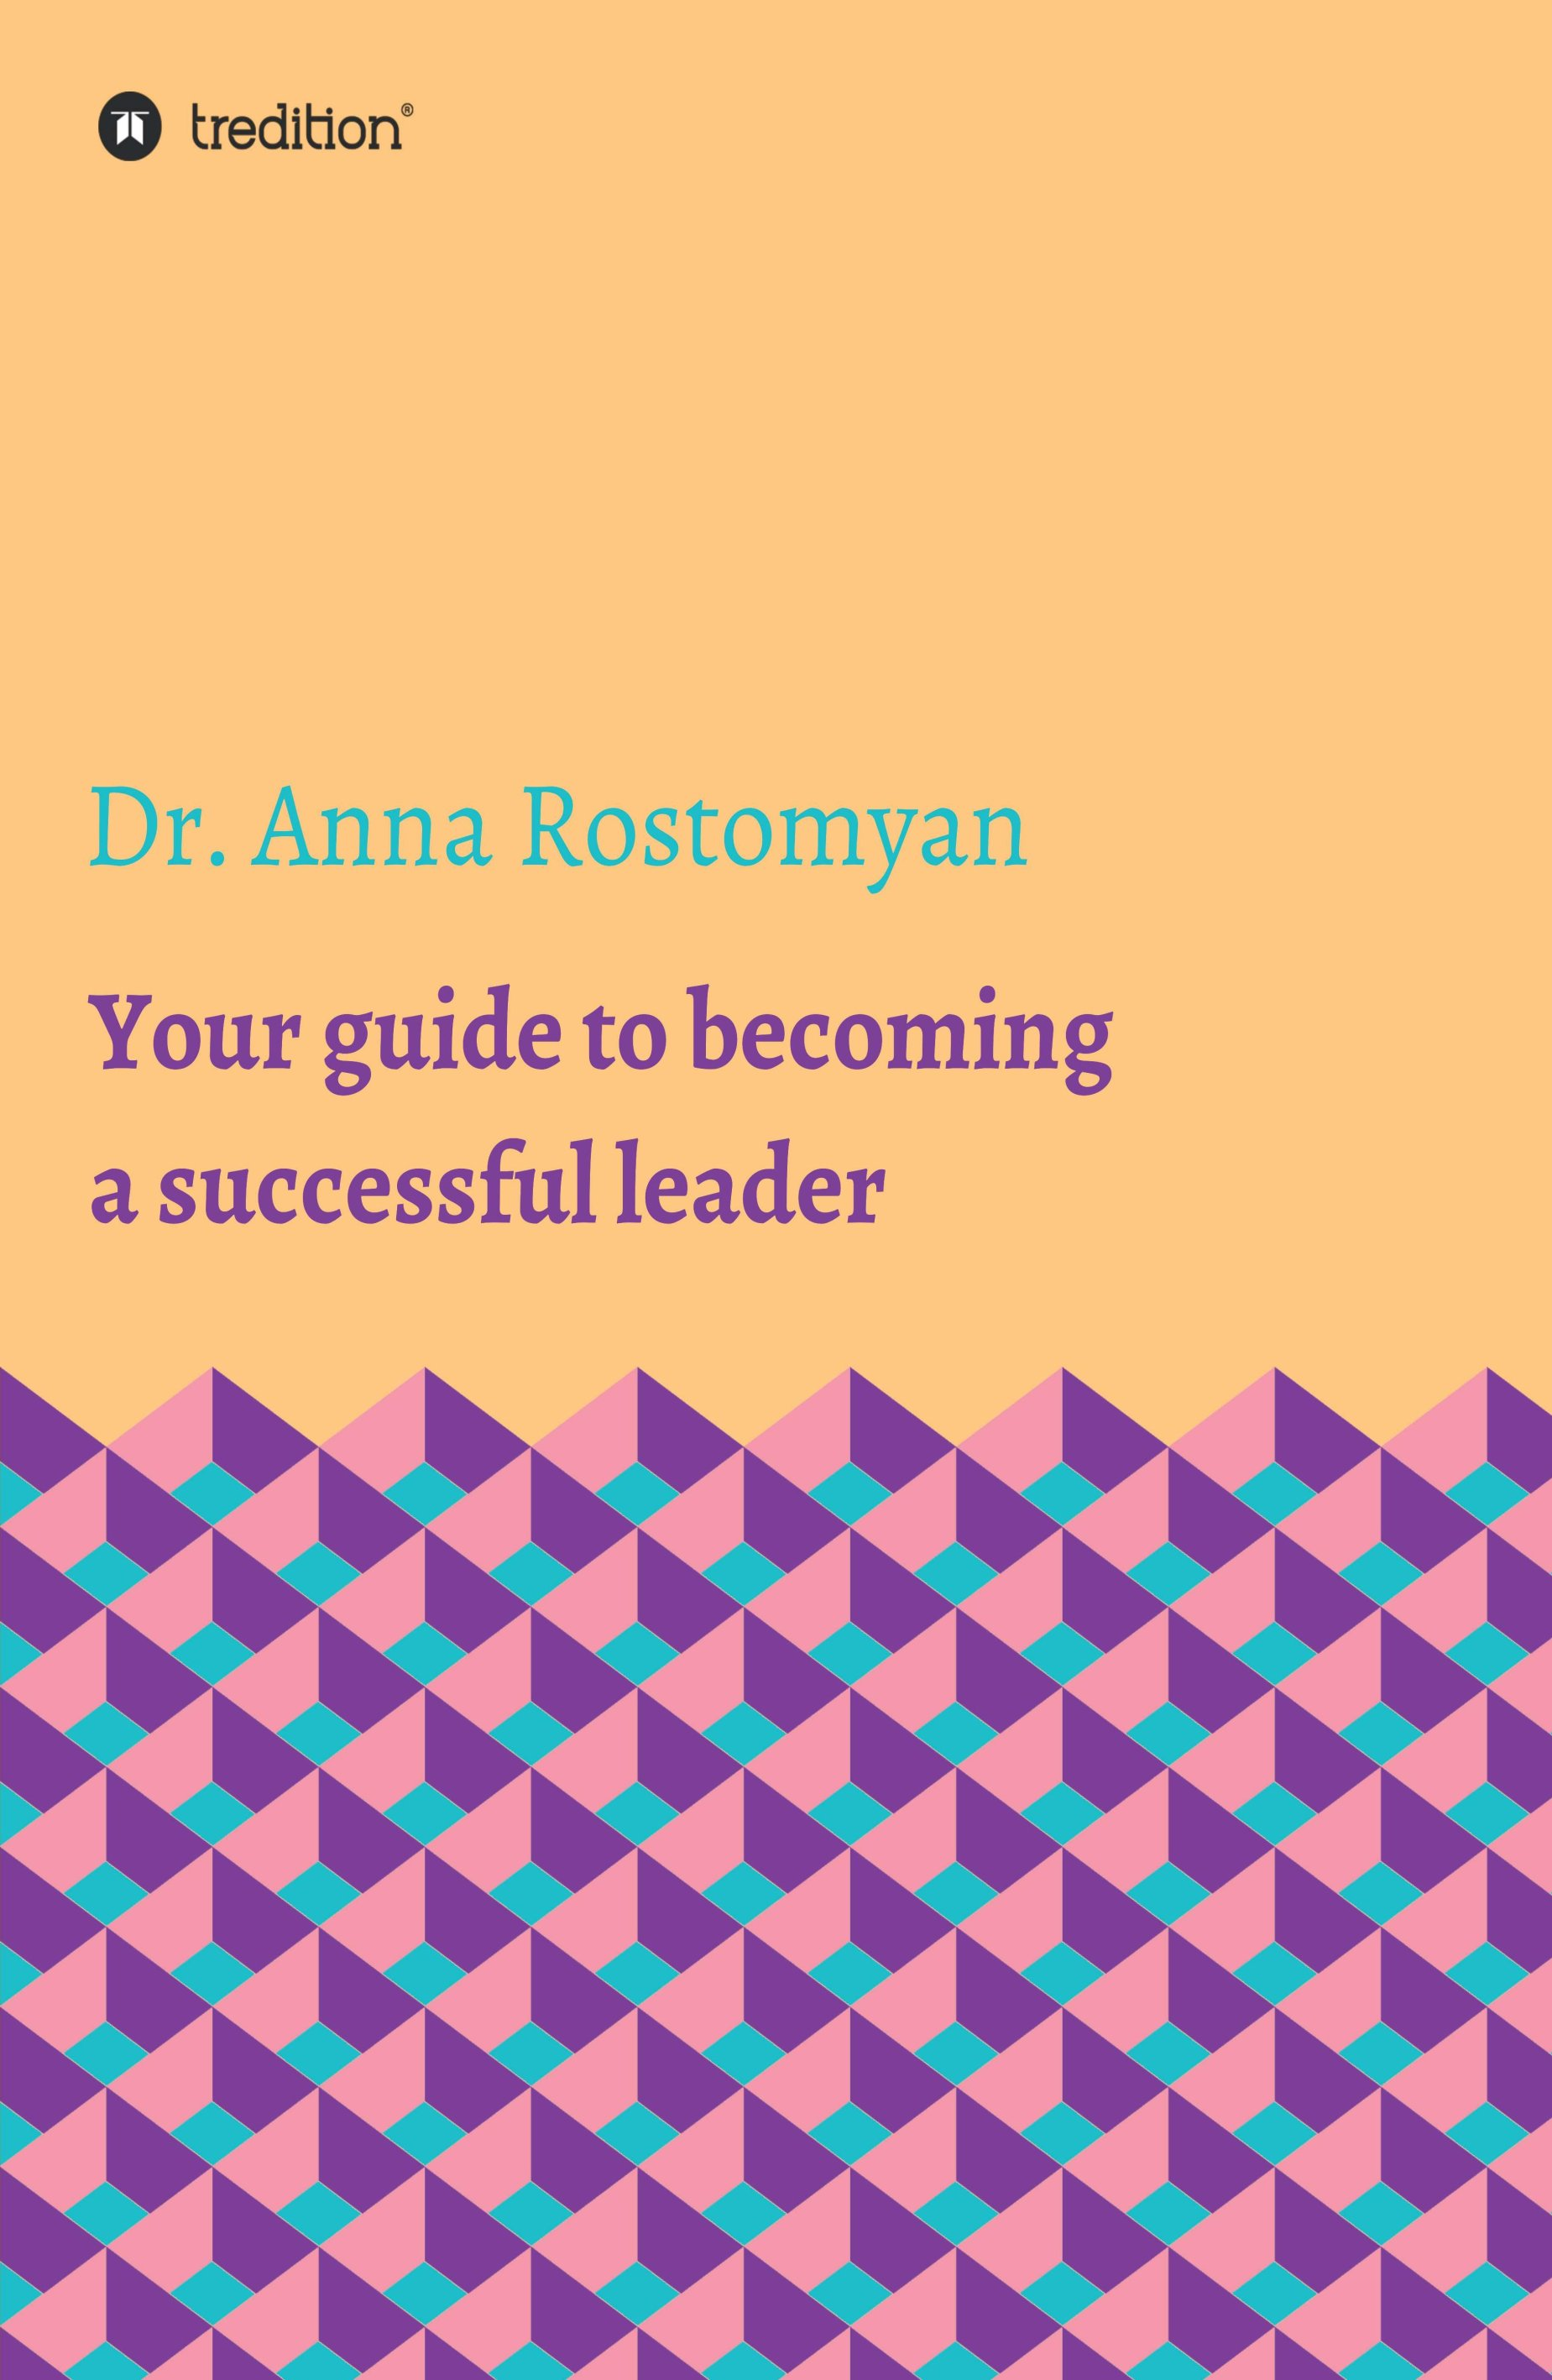 Your guide to becoming a successful leader - Advice on developing leadership skills